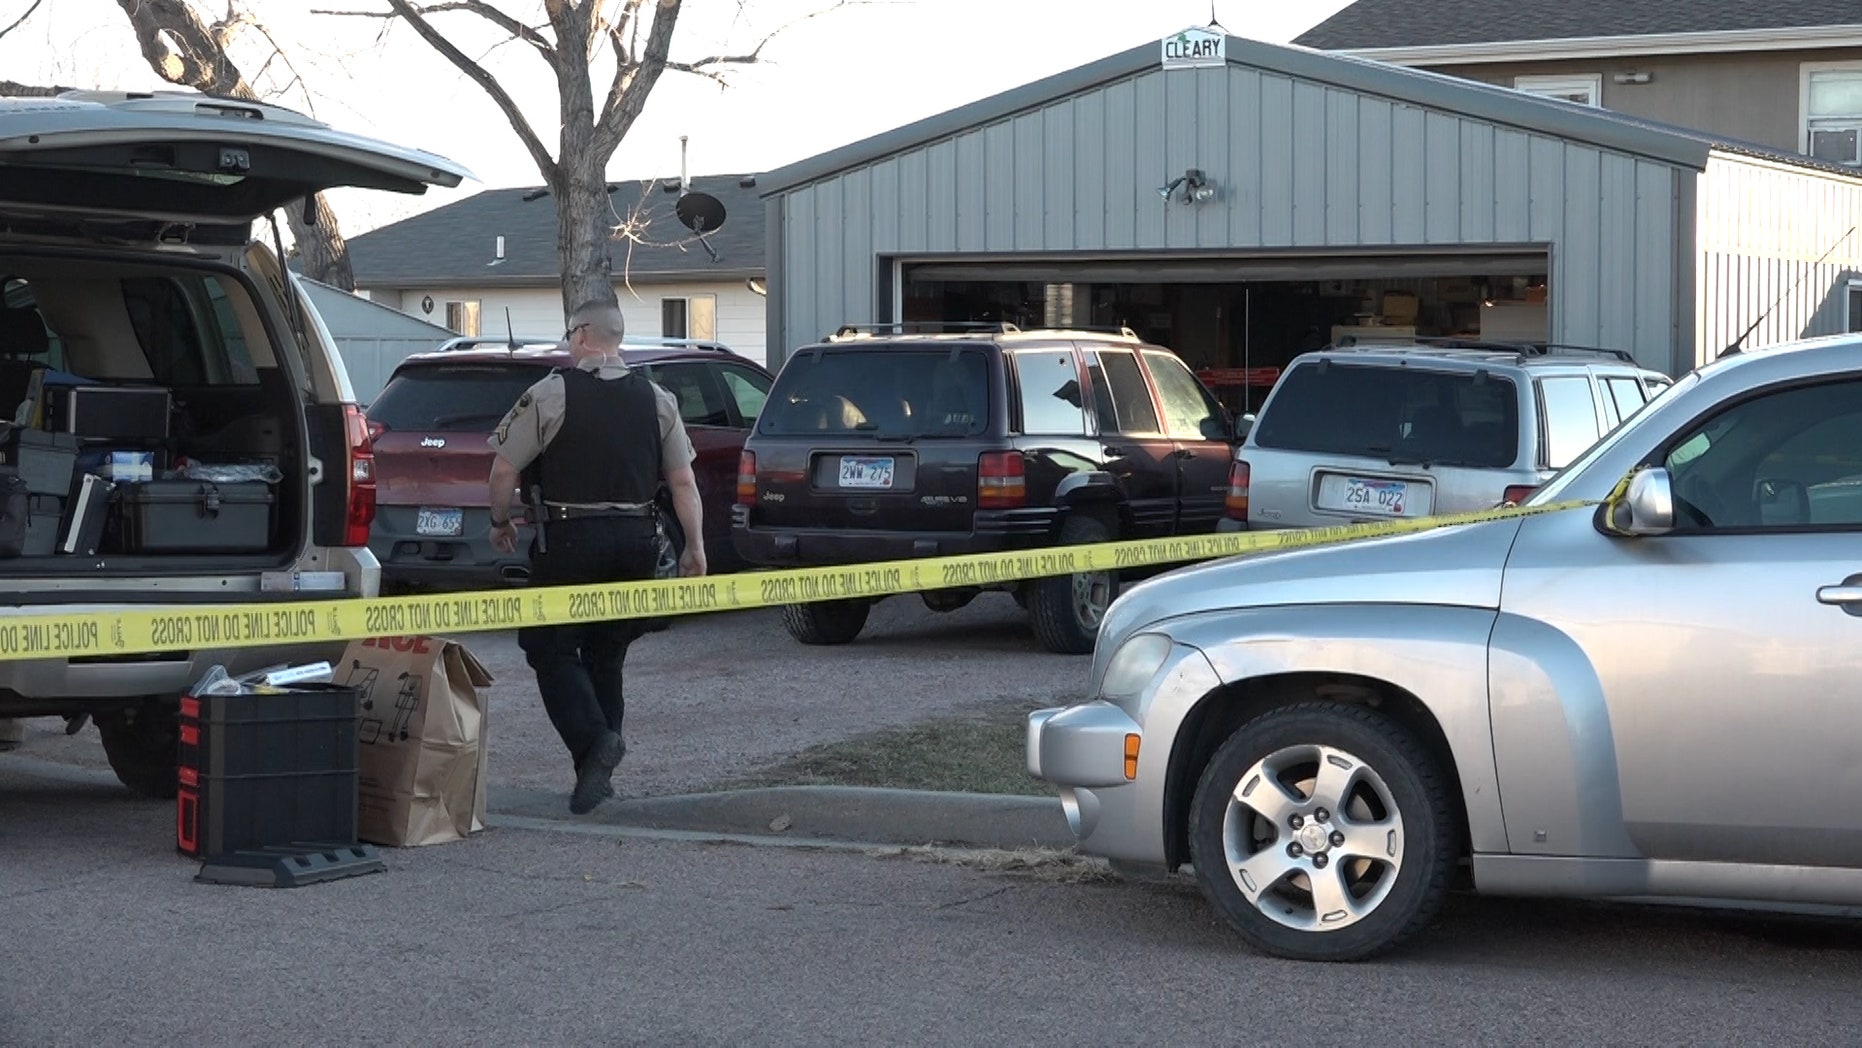 Law enforcement in South Dakota investigate the scene where a woman's body was found in a freezer.